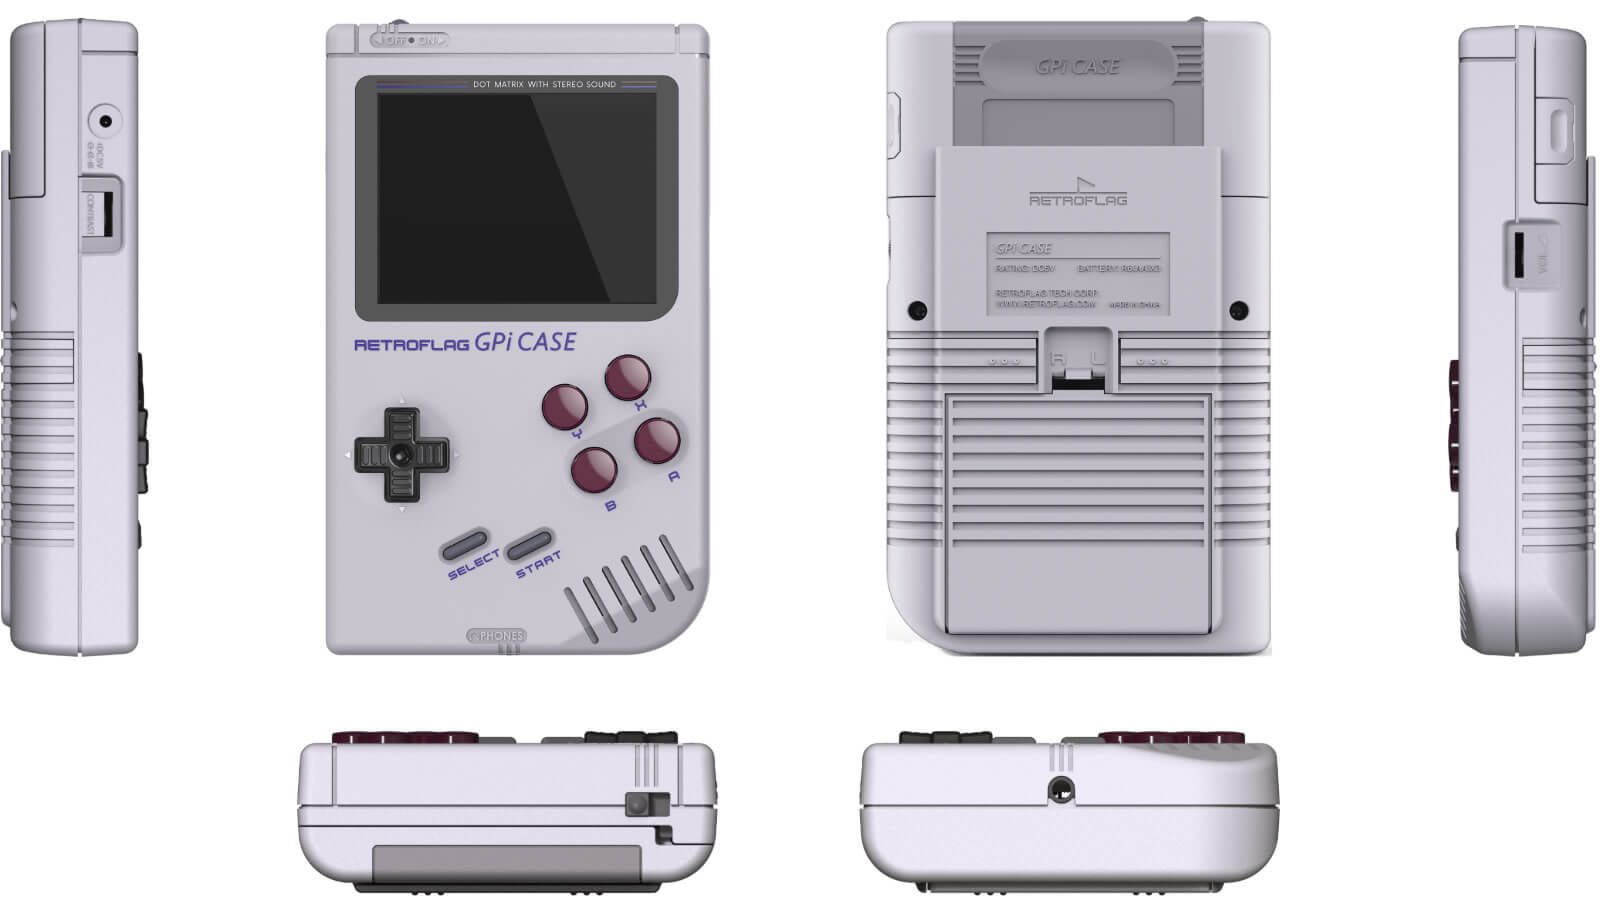 Retroflag raspberry pi Game Boy case